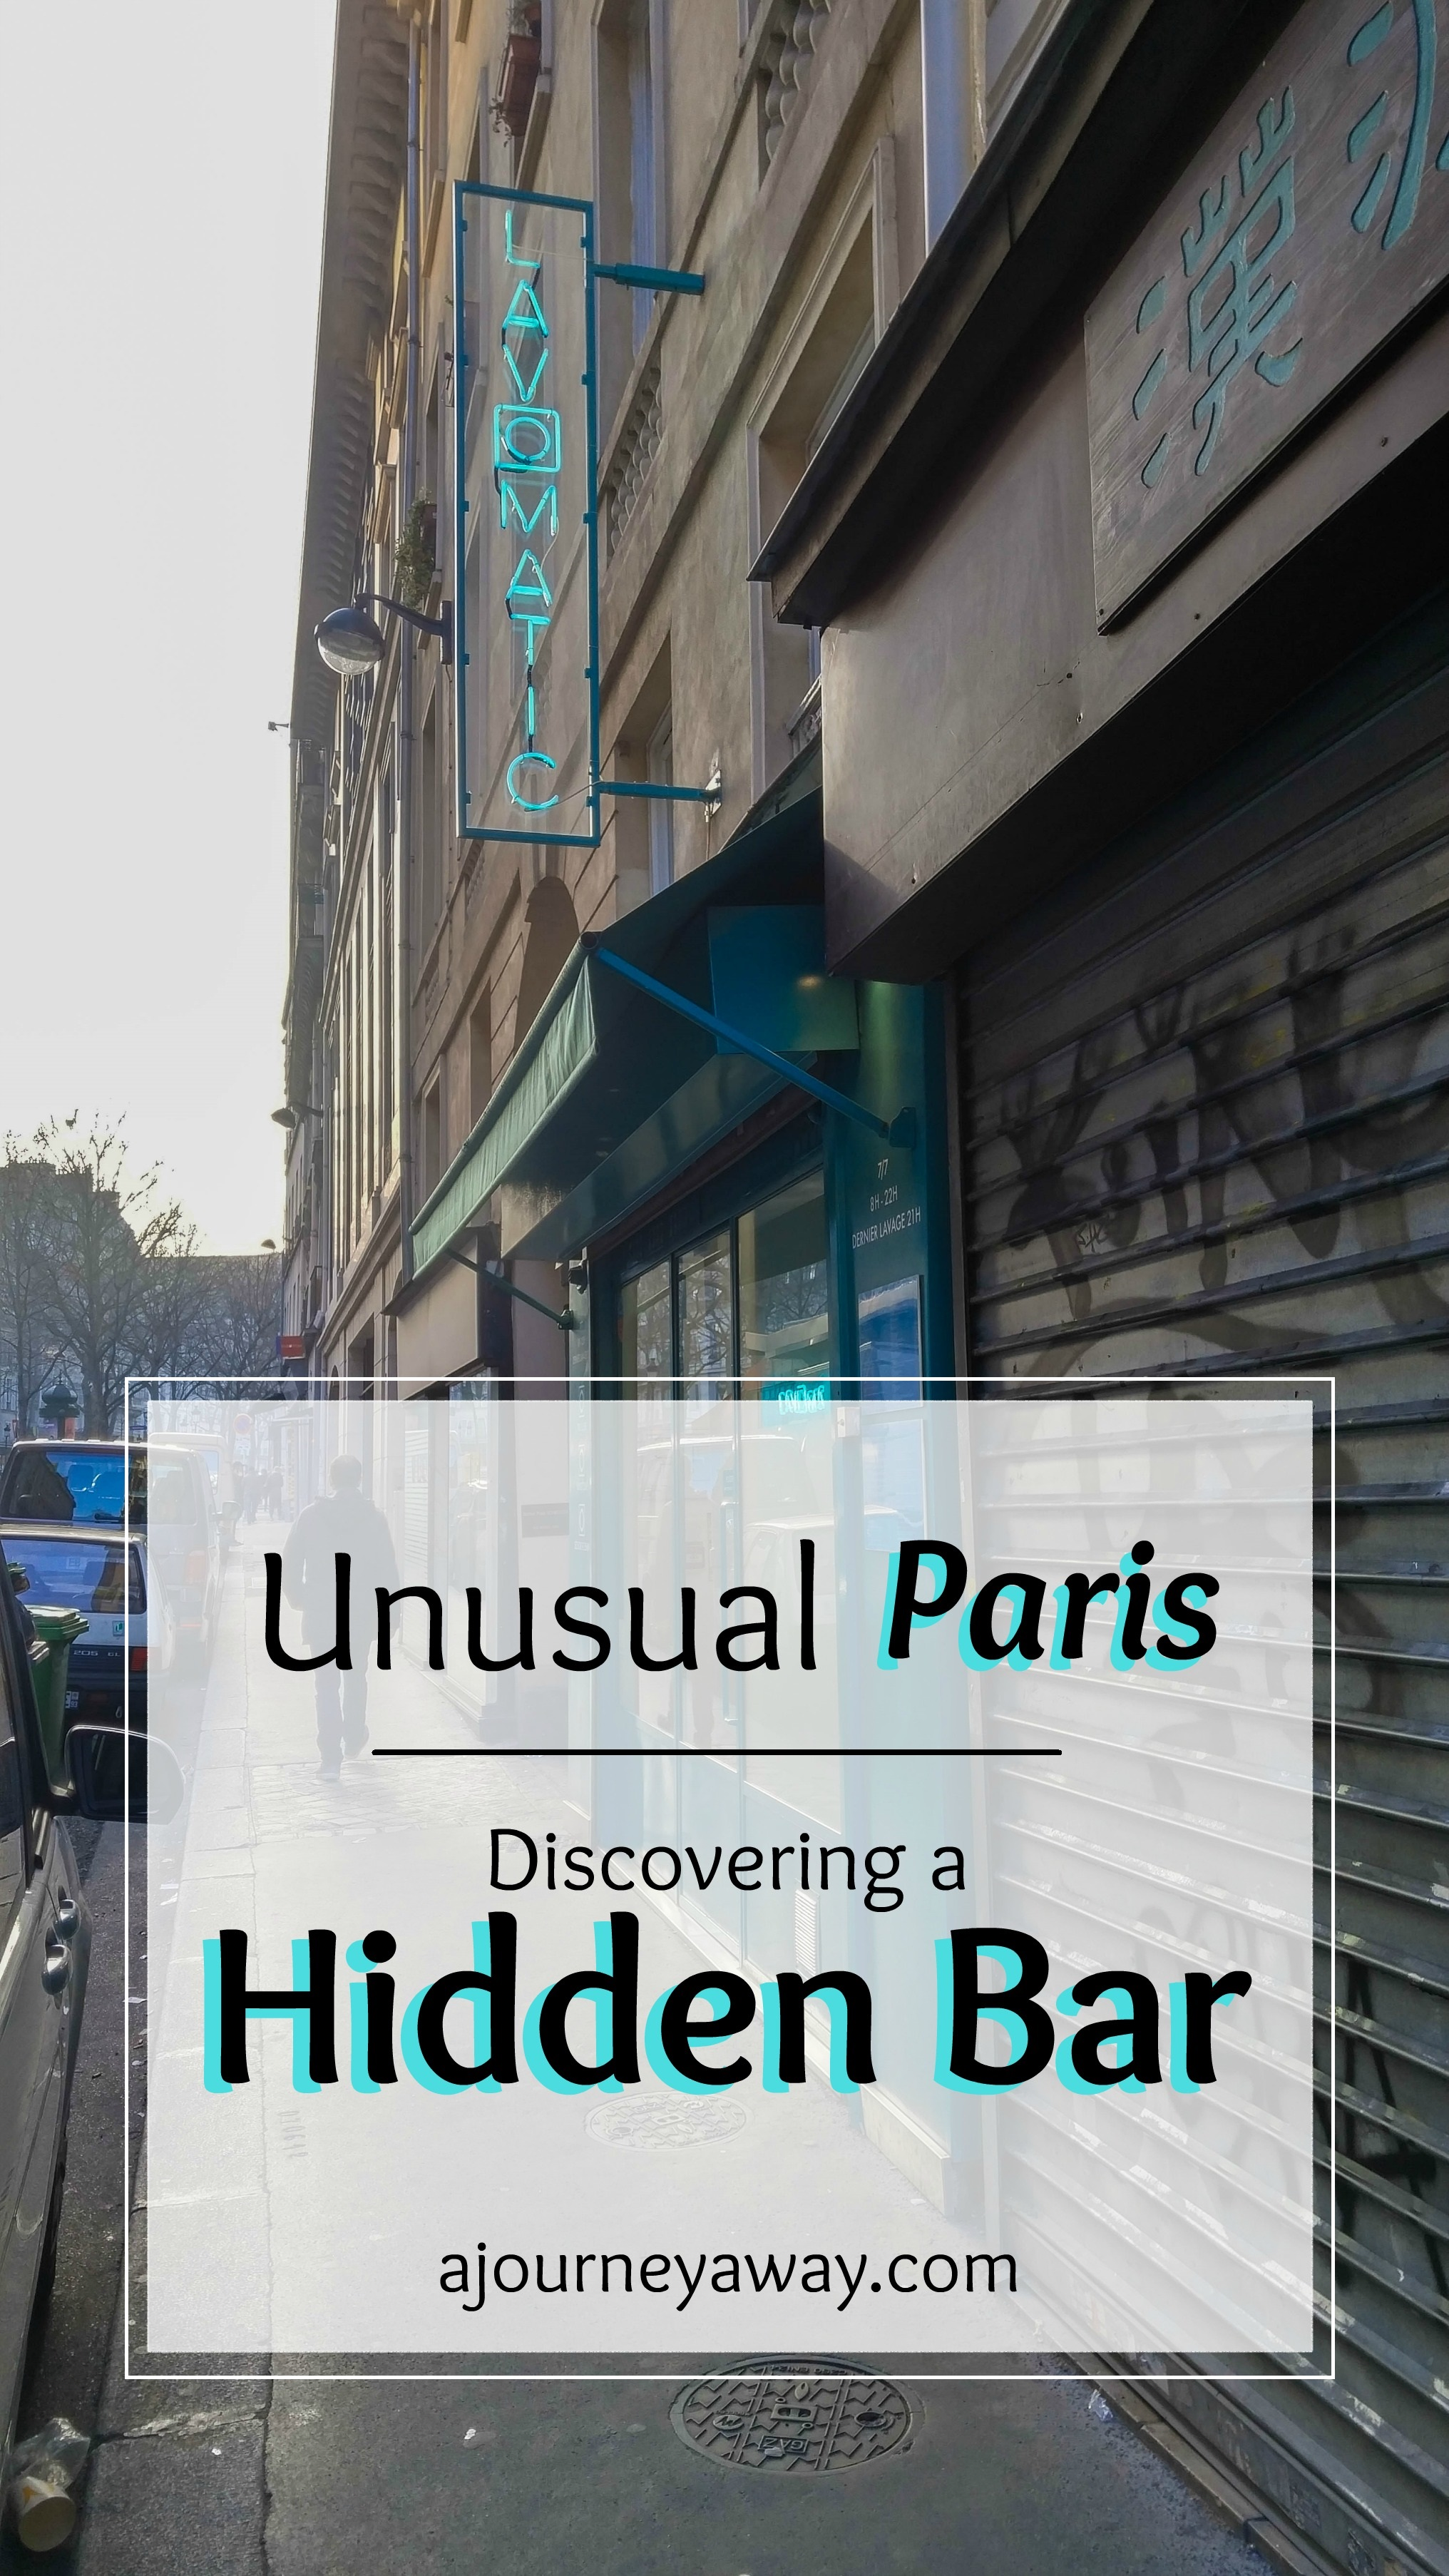 Unusual Paris: discover a Hidden bar | A Journey Away travel blog